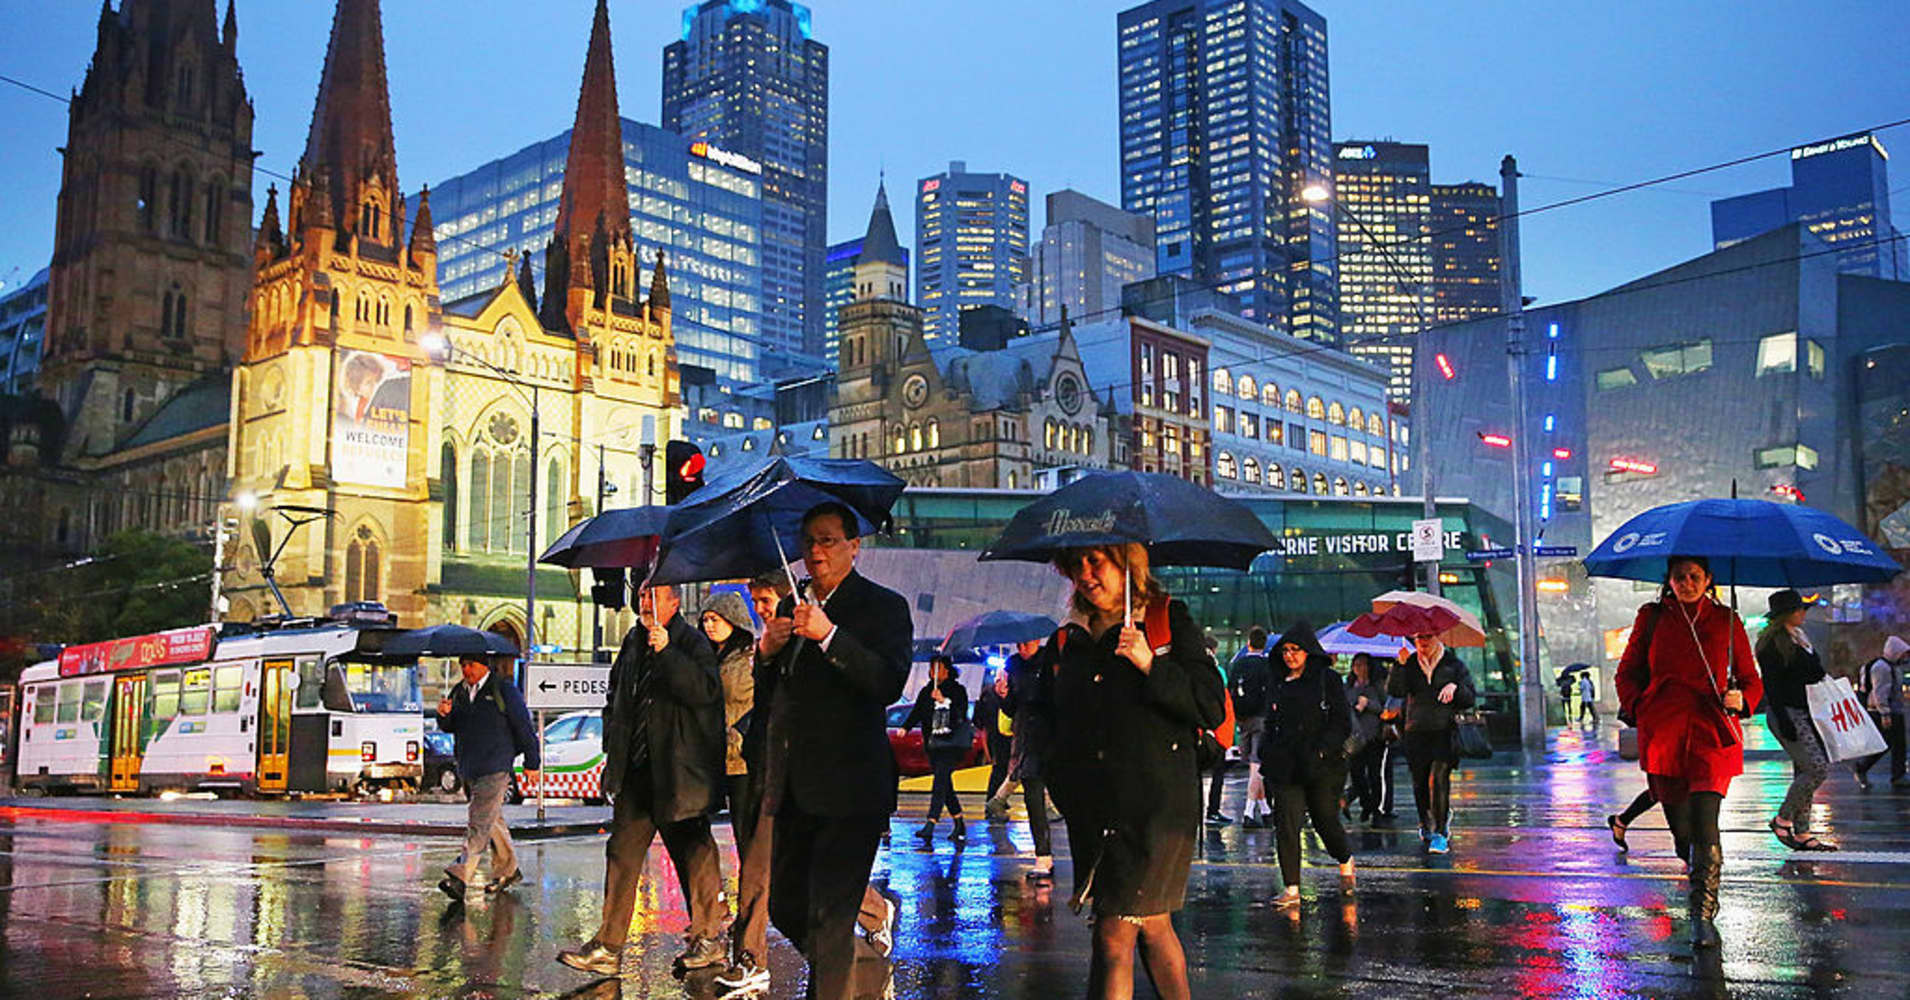 Melbourne Vienna Vancouver Ranked Top Three Most Livable